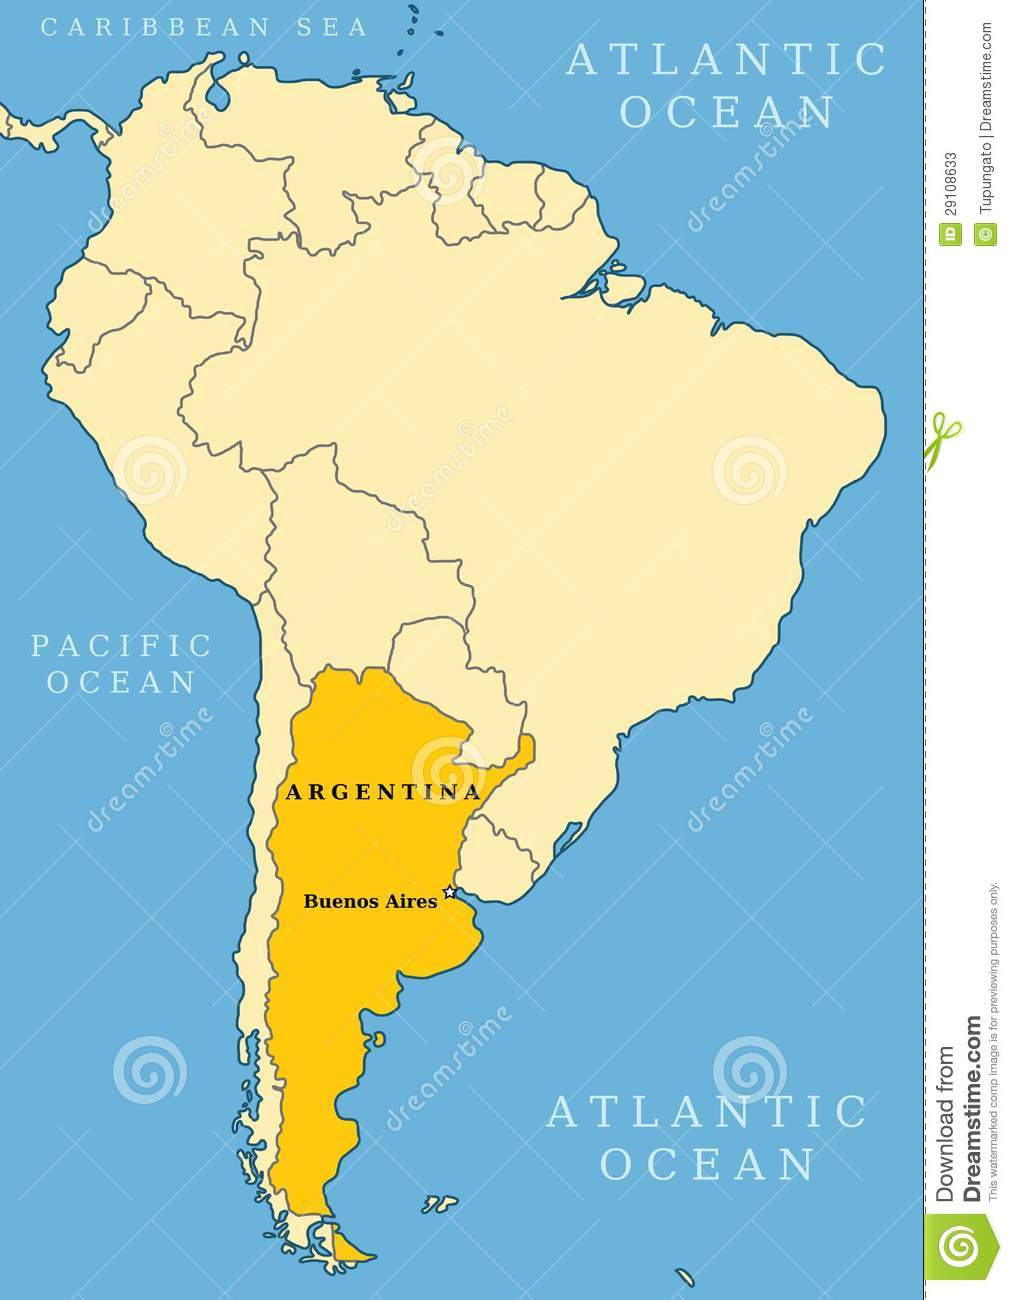 Where Is Buenos Aires On A World Map.Argentina Locator Map Stock Vector Illustration Of Borders 29108633